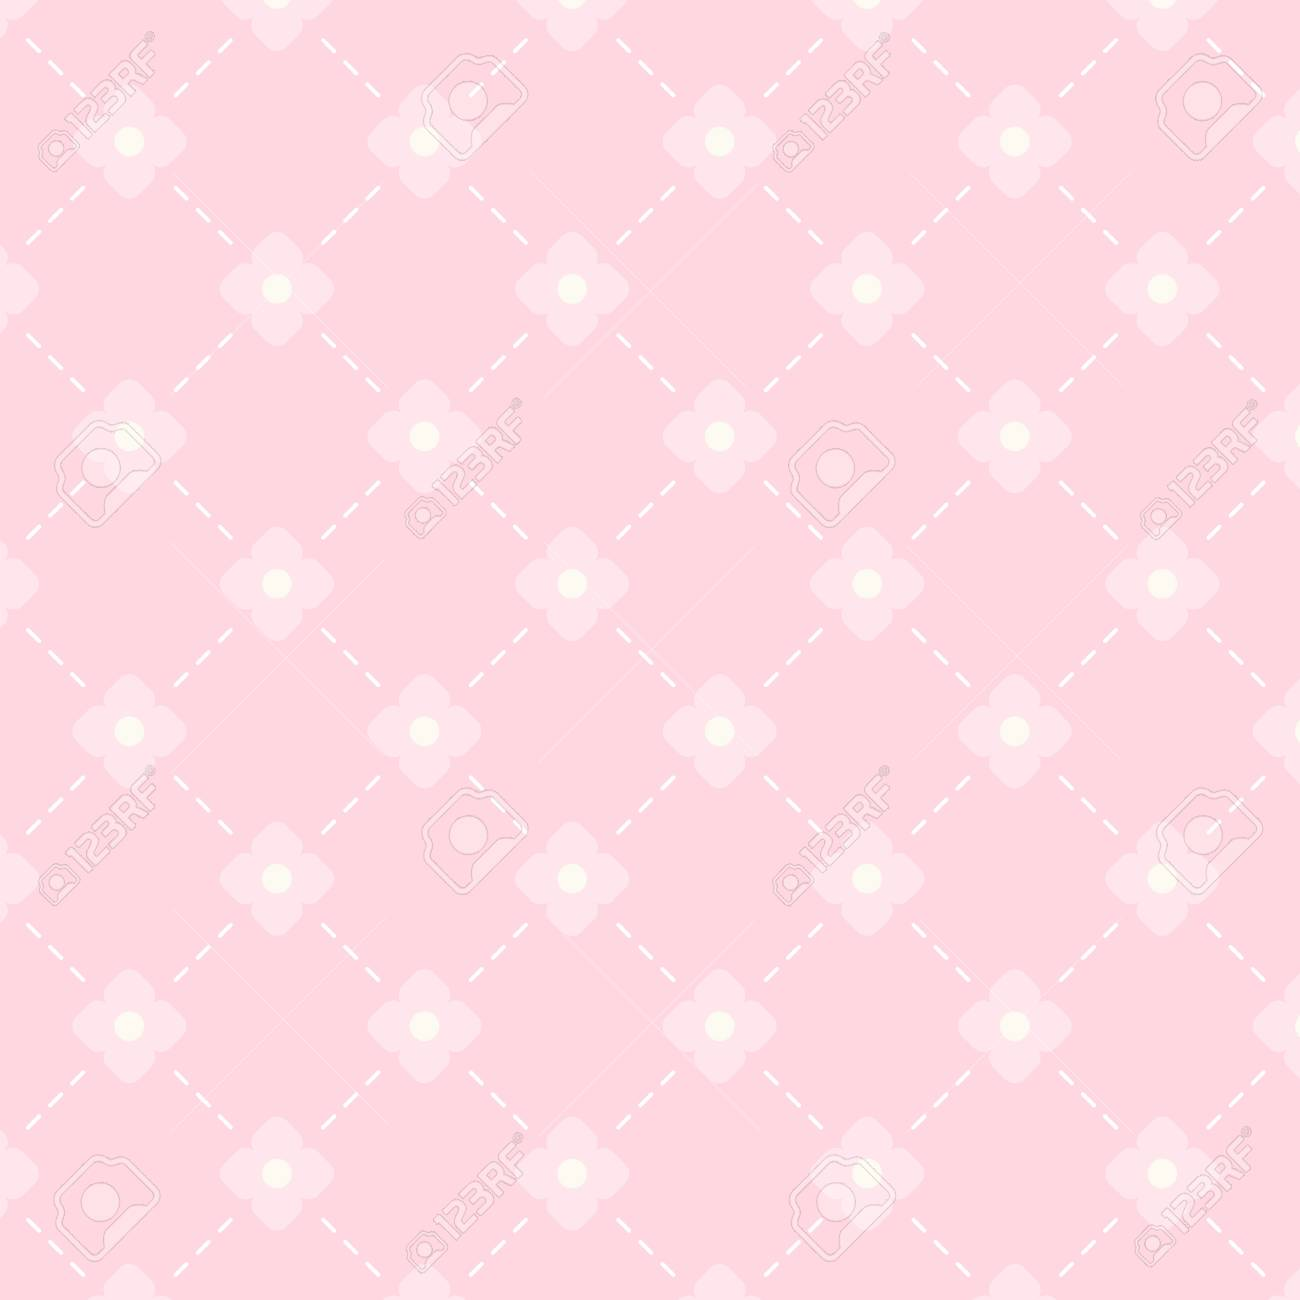 Vintage Background In Shabby Chic Style As Rhombus Pattern Royalty